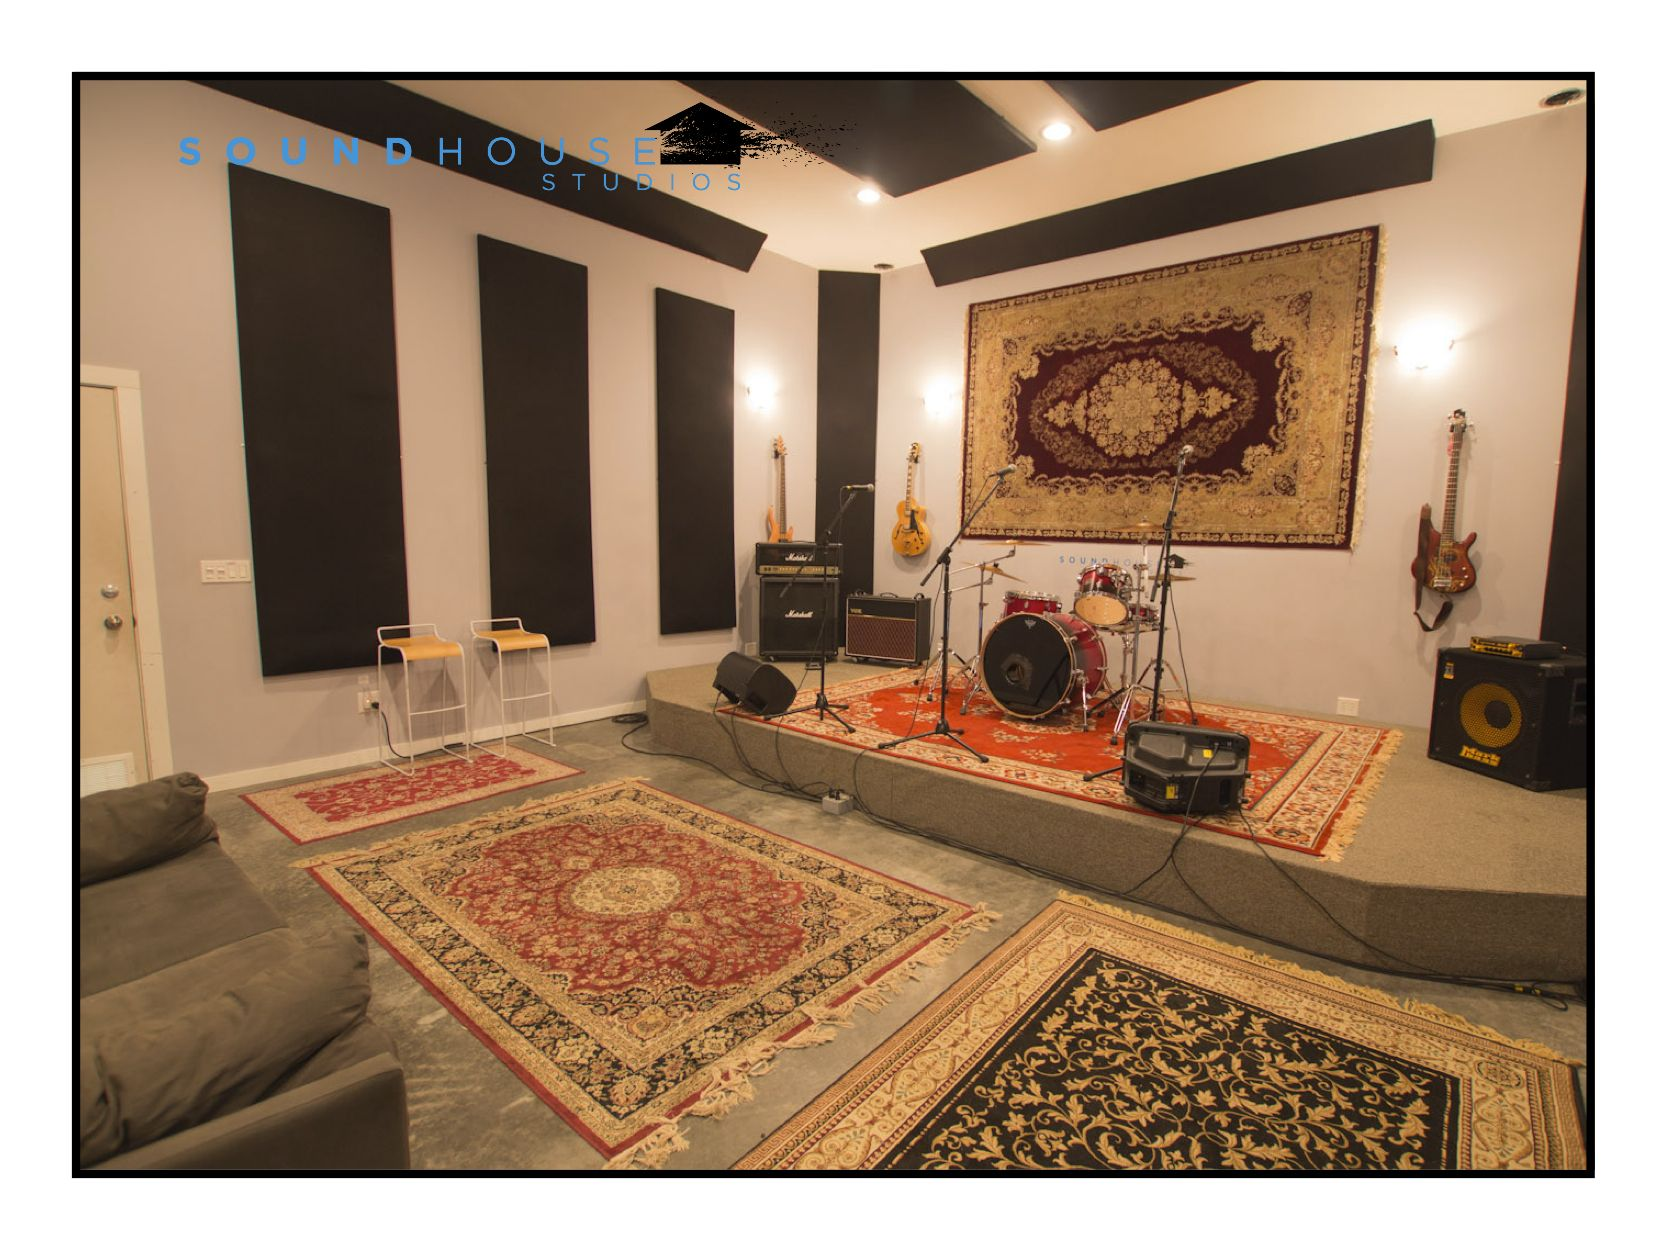 Vancouver Rehearsal Studio Event Space Soundhouse Studios Home Music Rooms Music Room Design Music Studio Room